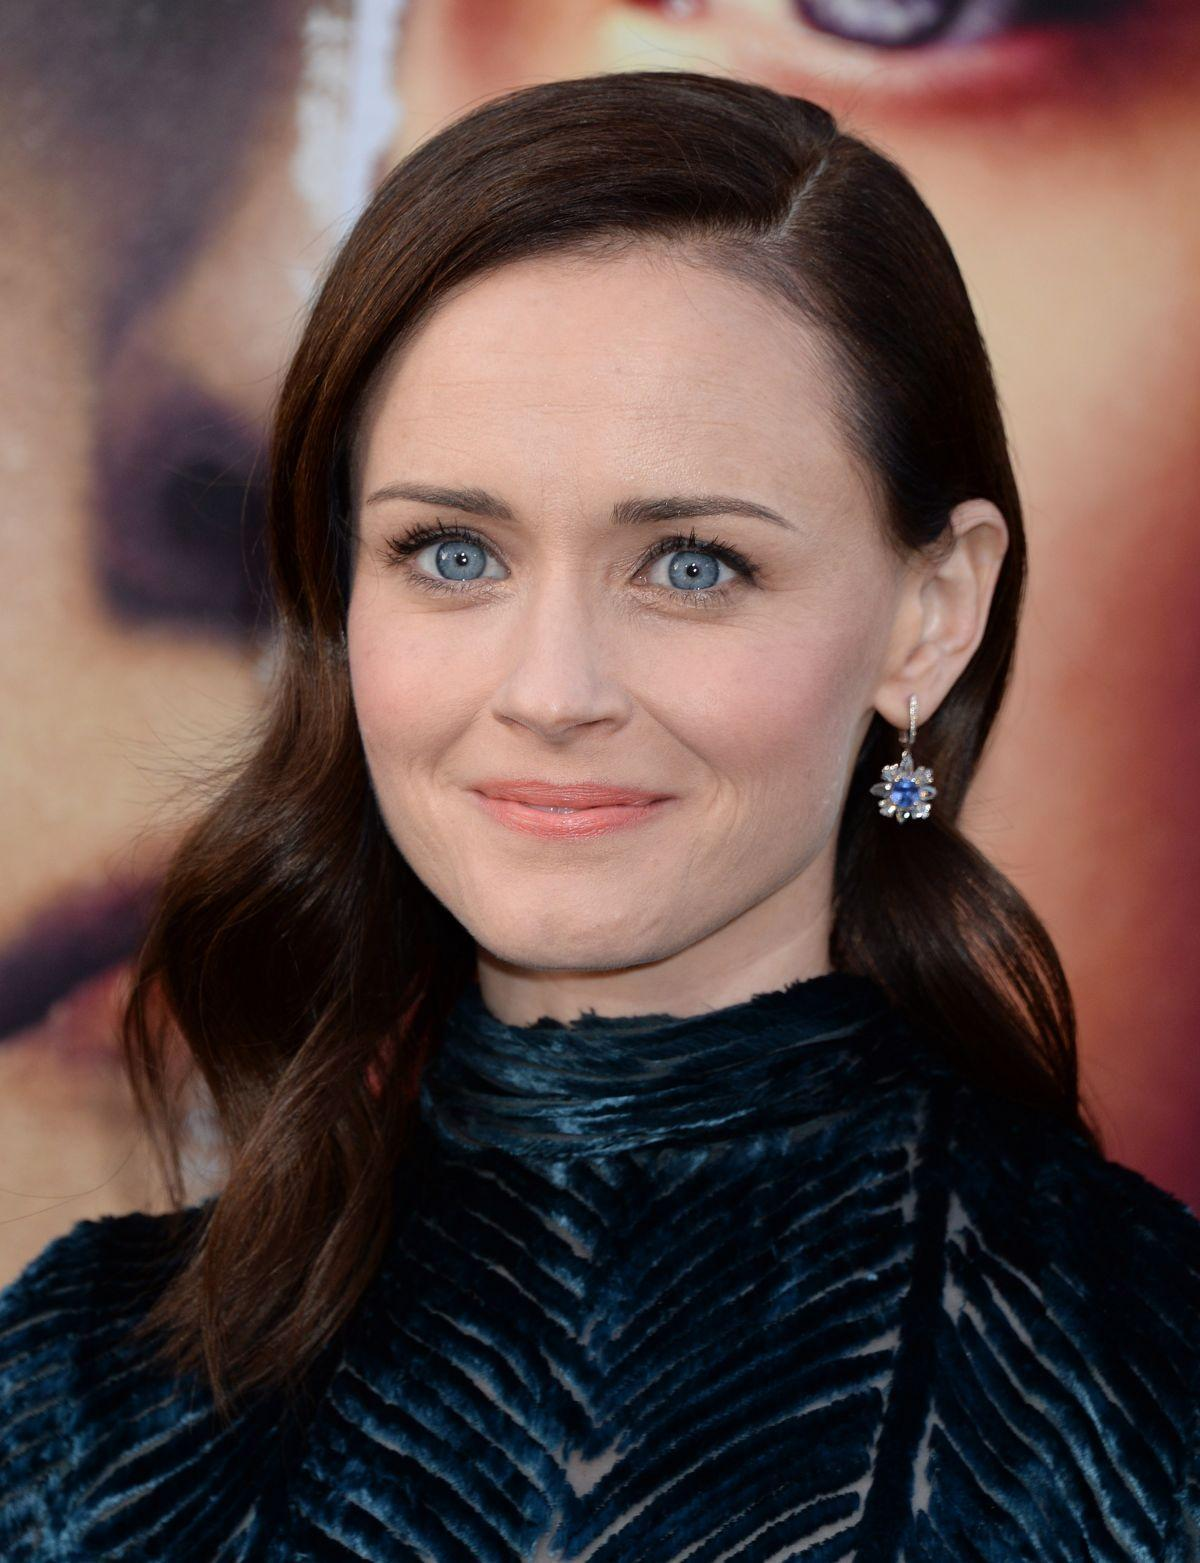 Alexis Bledel At The Handmaids Tale Season 2 Premiere In Hollywood ...